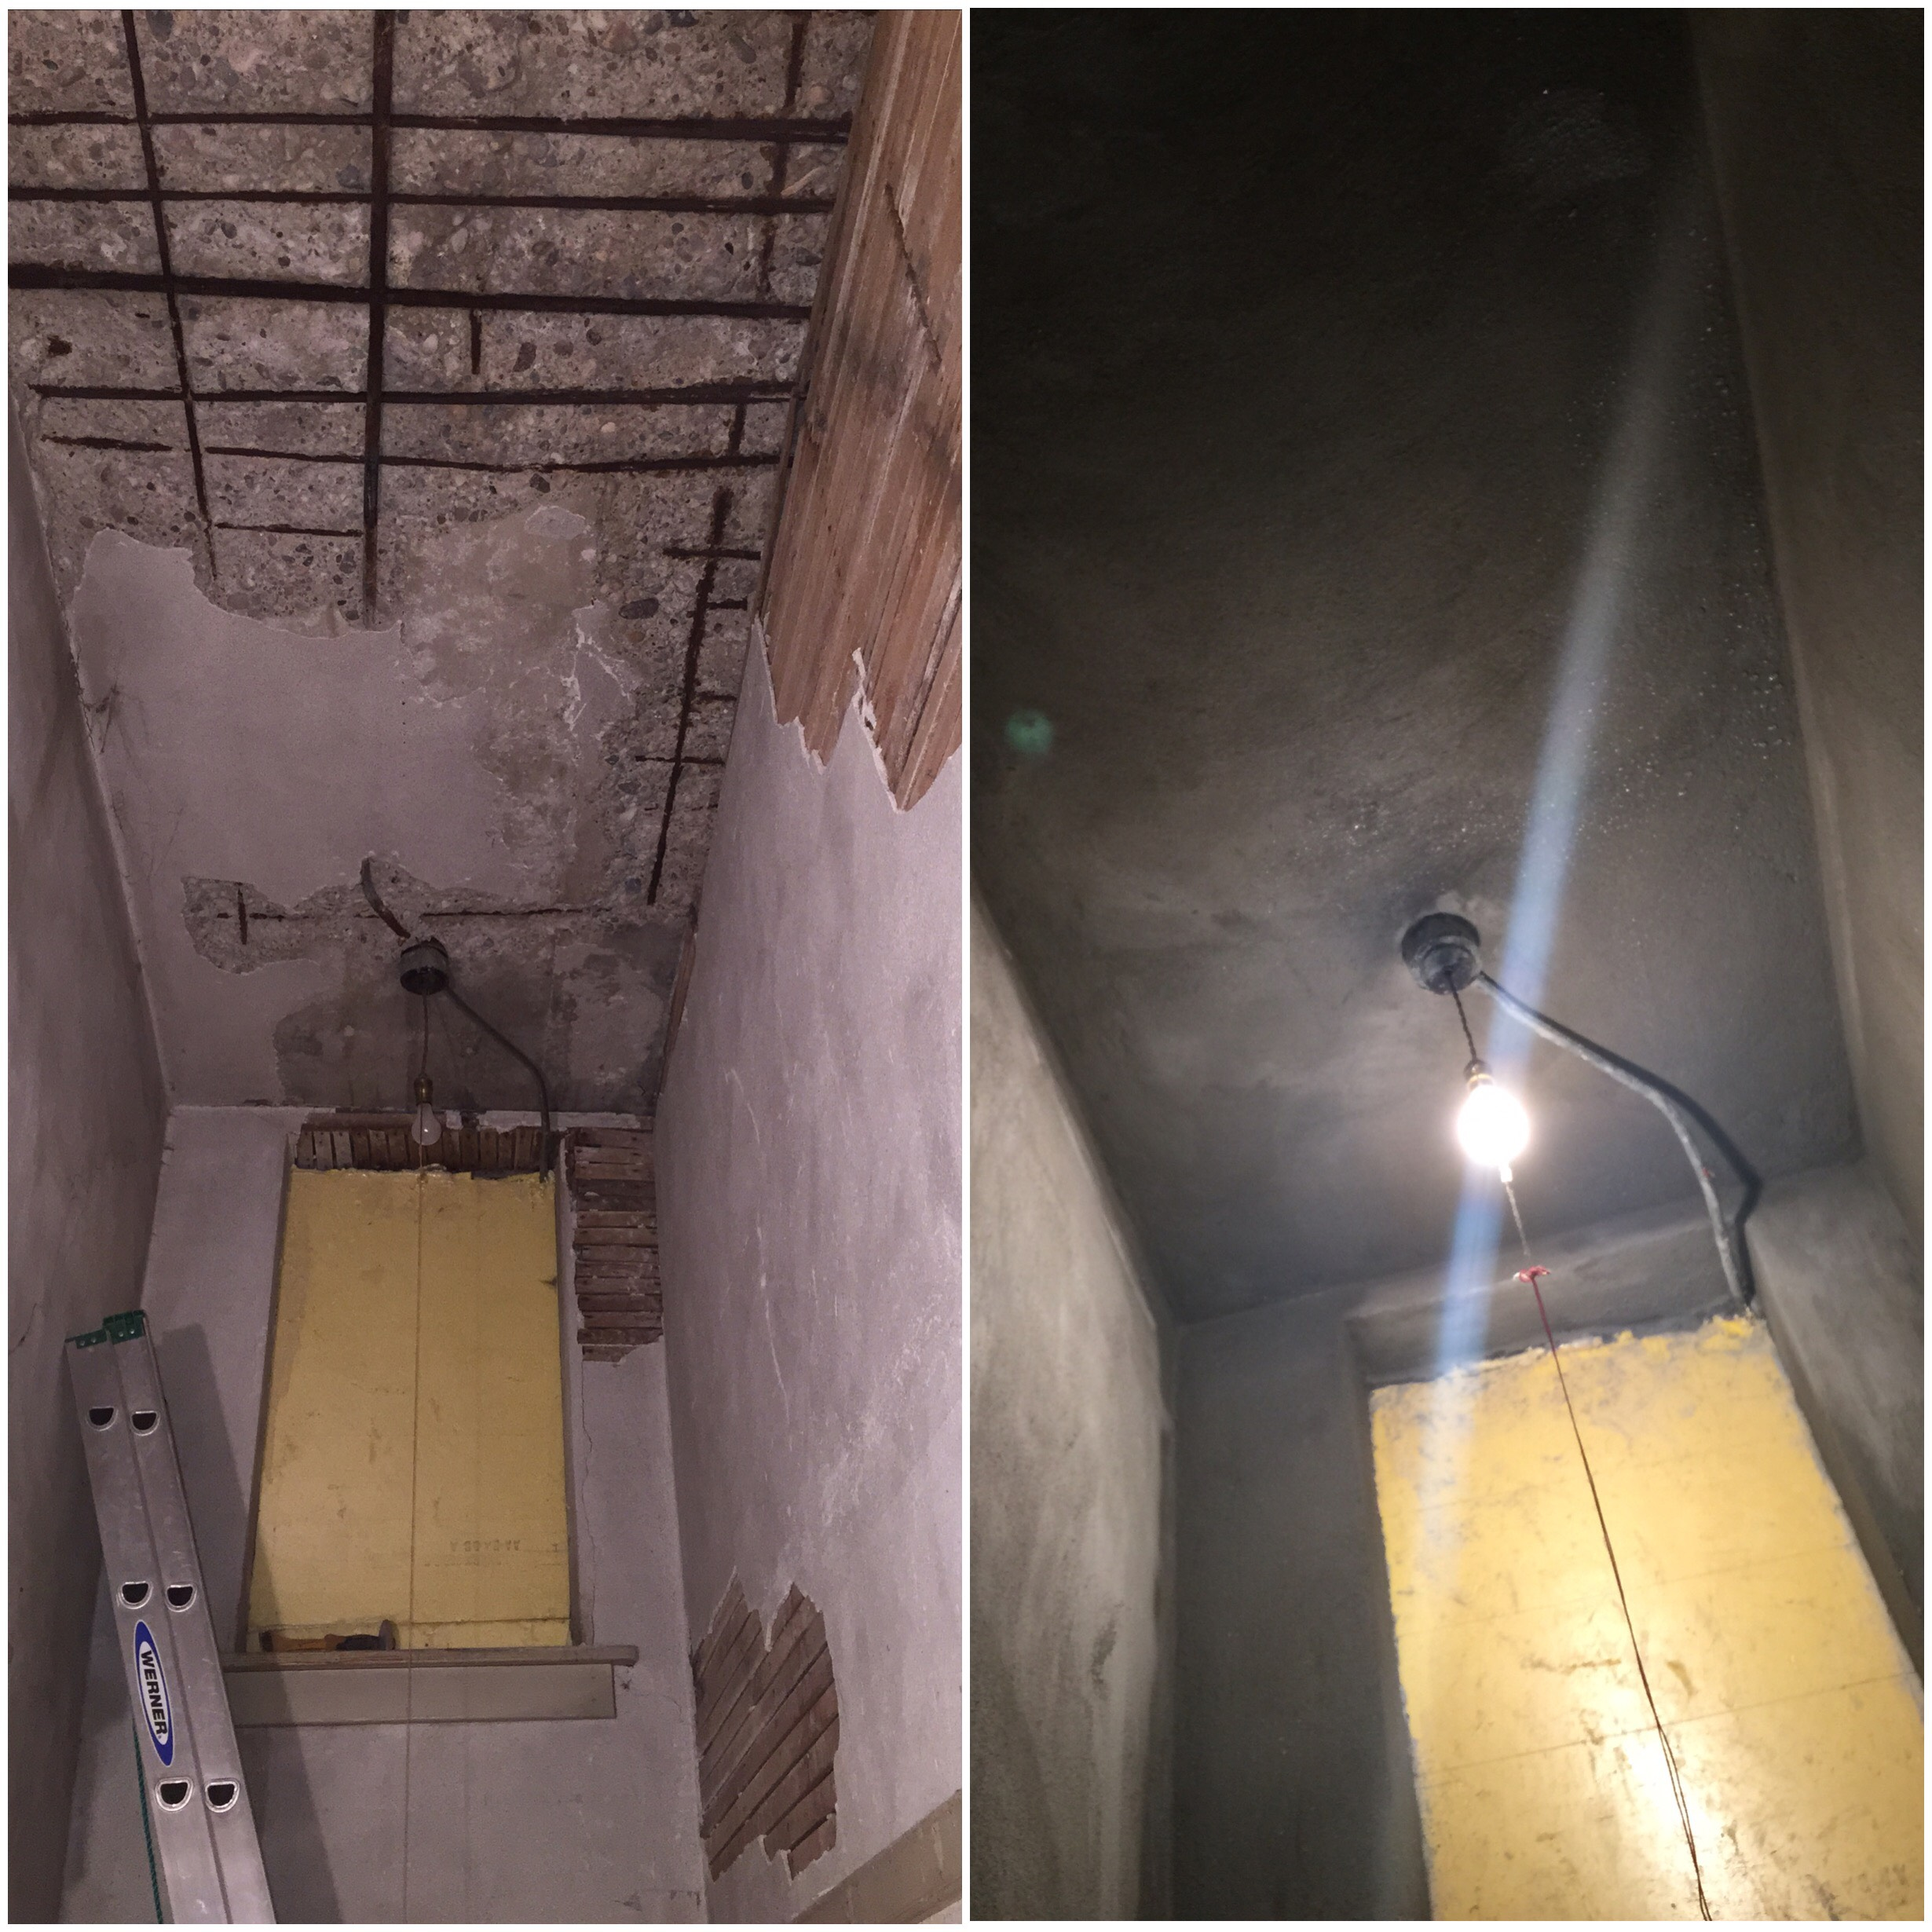 Before and after of storage closet restoration in lower level of the original building. Made possible with a grant provided by North Star Caviar.